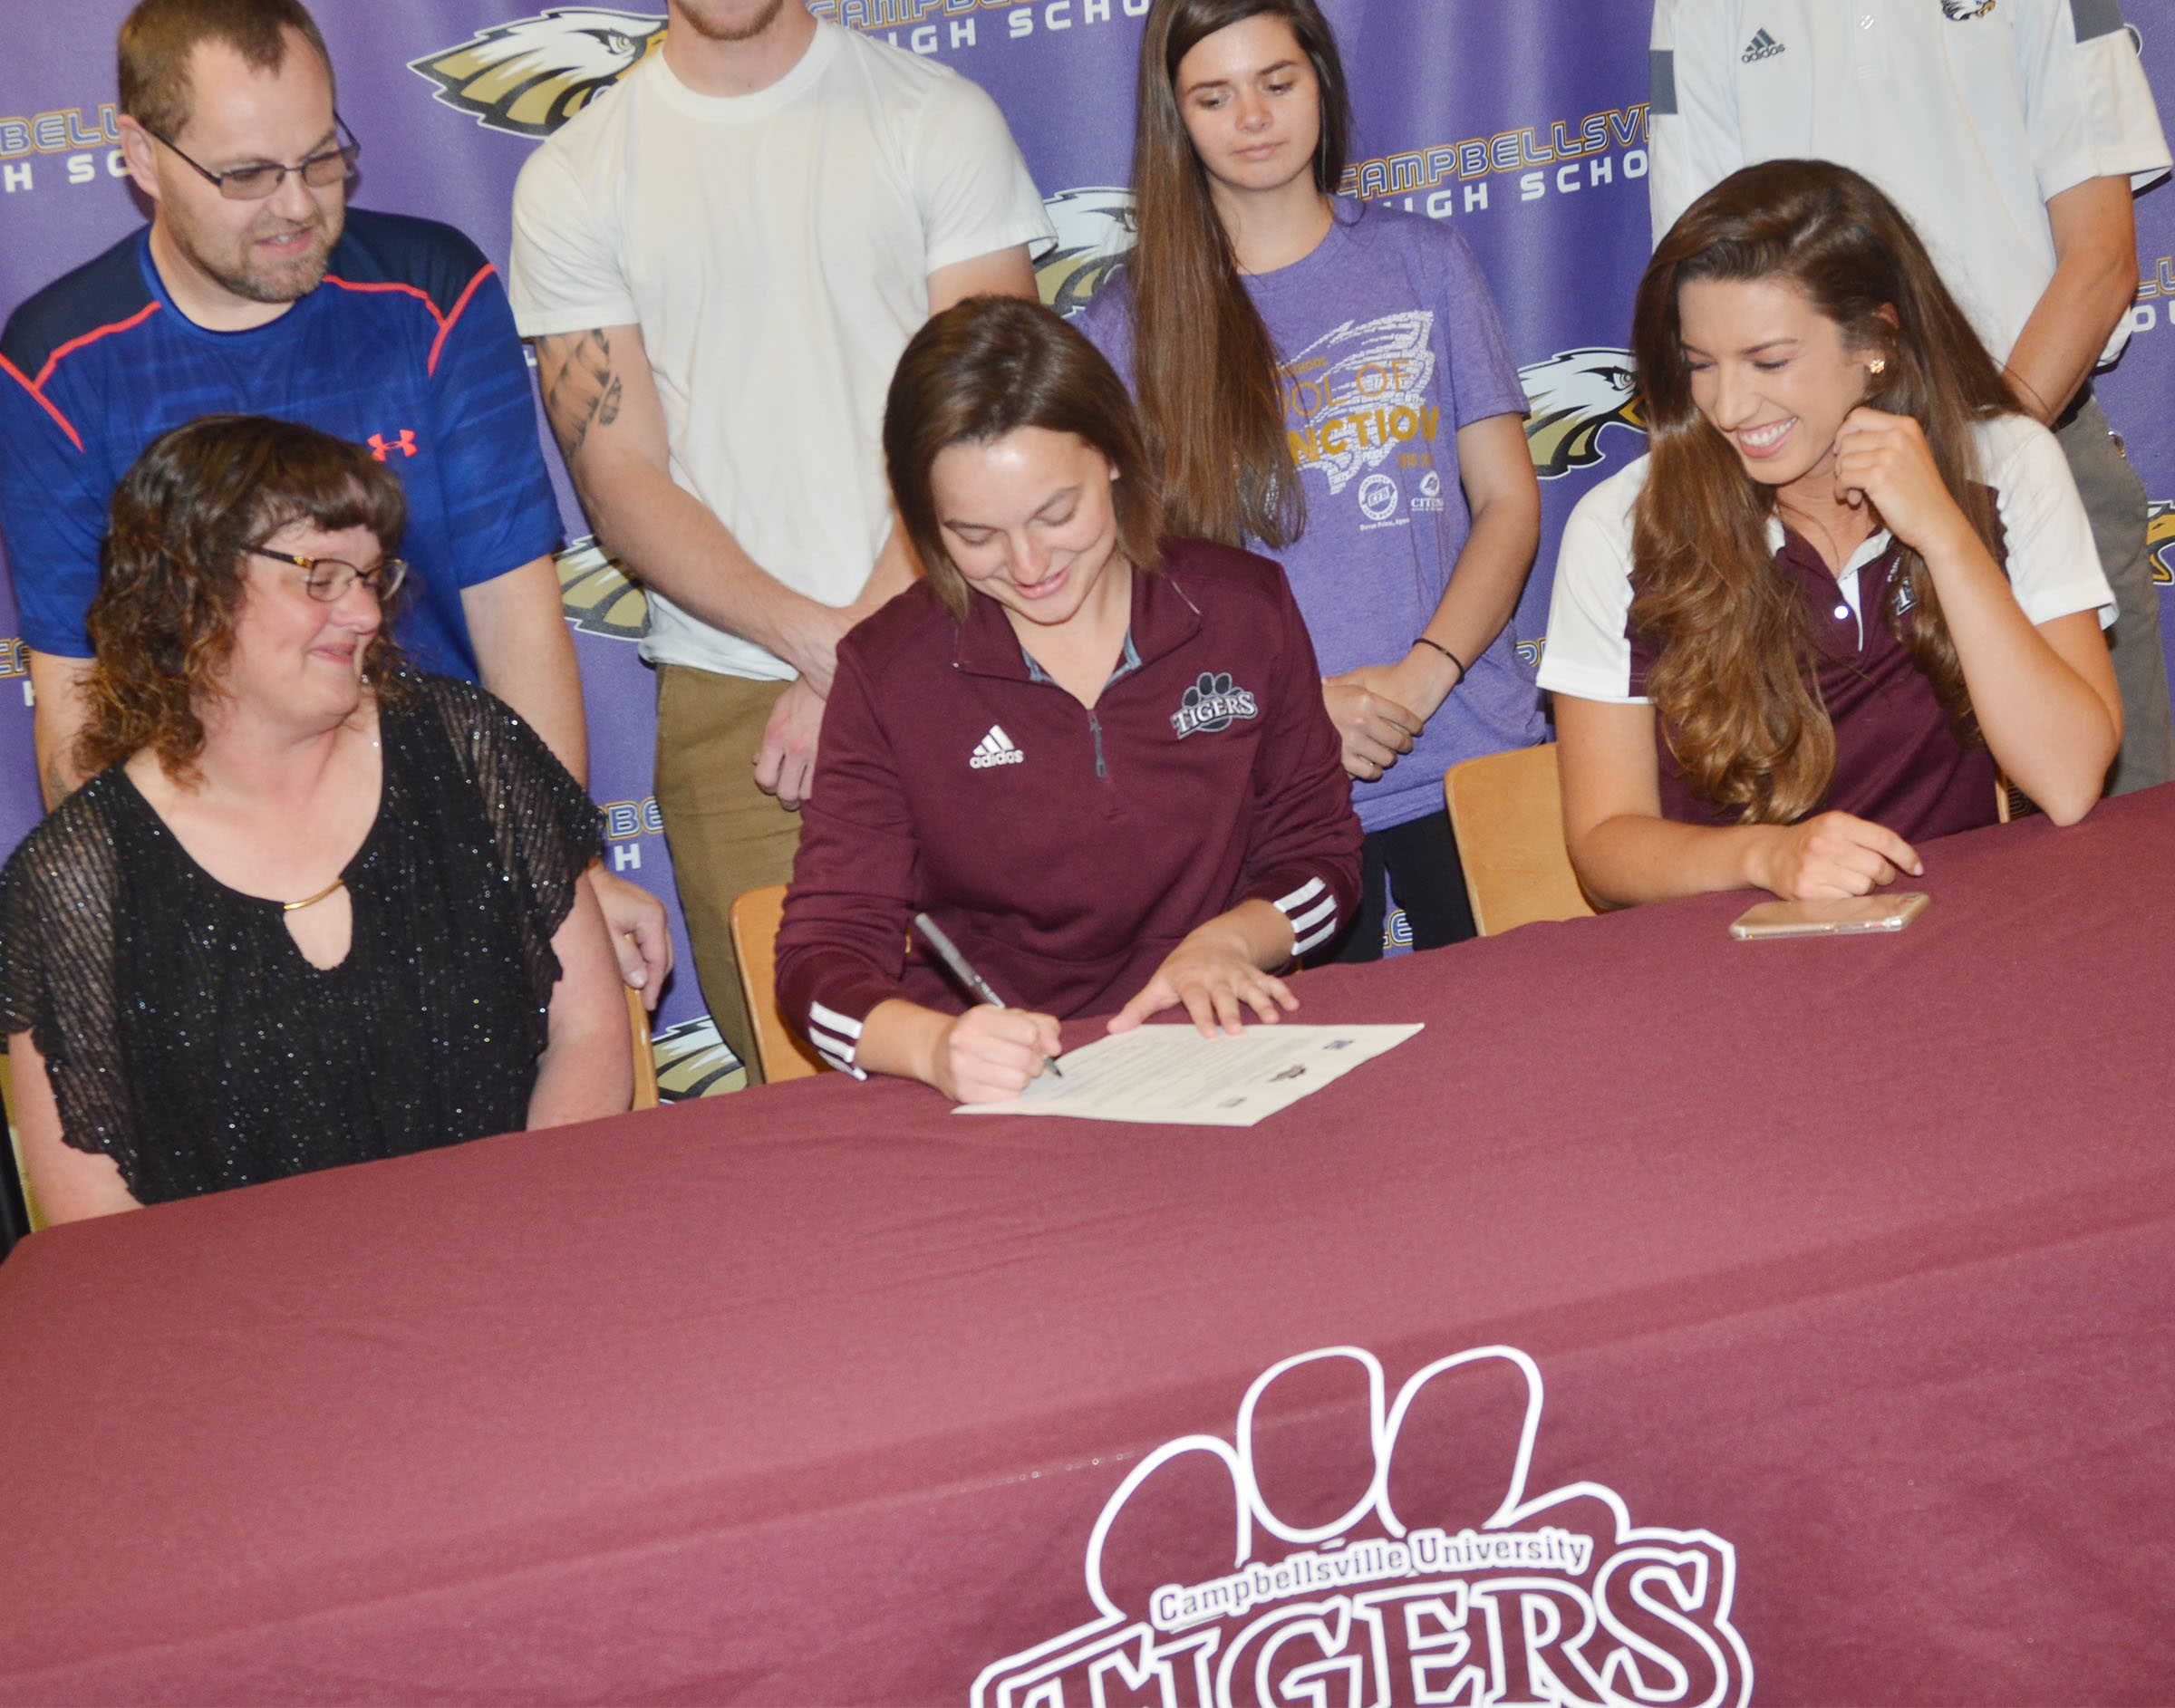 Campbellsville High School senior Kyrsten Hill will continue her academic and tennis career at Campbellsville University this fall. She recently signed her letter of intent in a special ceremony with her family, friends, teammates and coaches. From left, her parents Tonya and Jonathan Hill, teammate Shauna Jones, who is also a senior, and CU tennis coach Kristen Hamrick watch her sign.